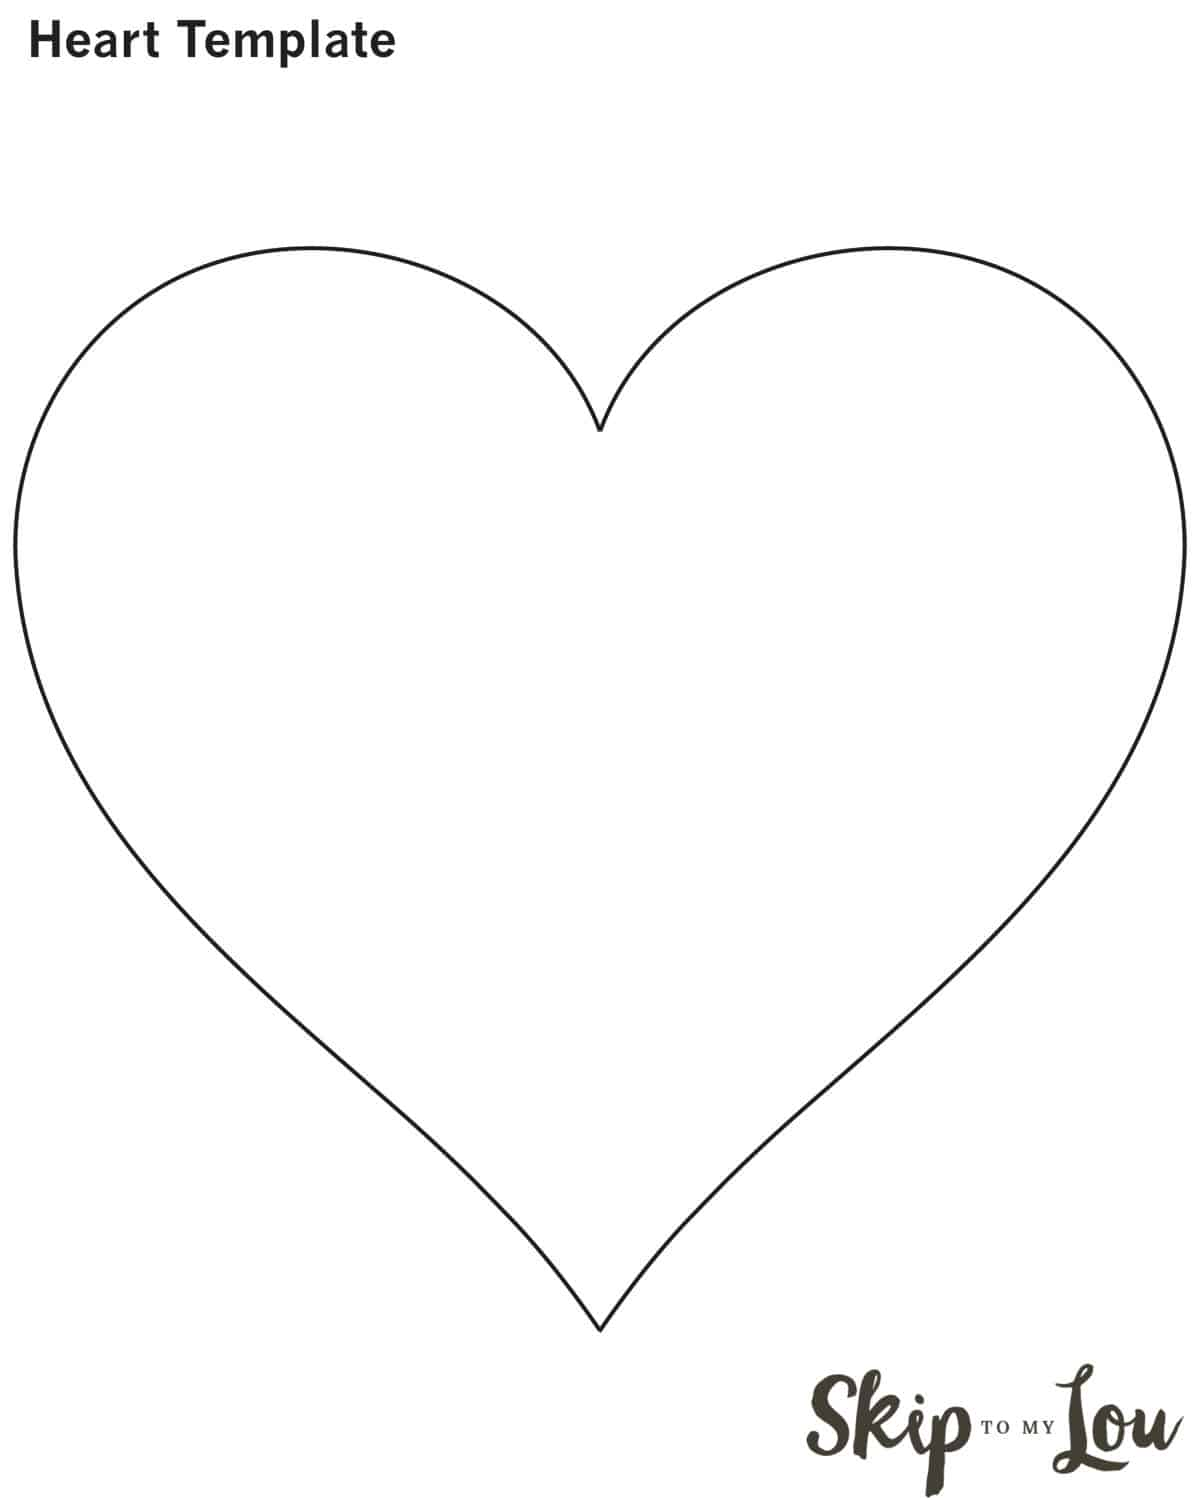 printable heart template - Valentine Templates Printable